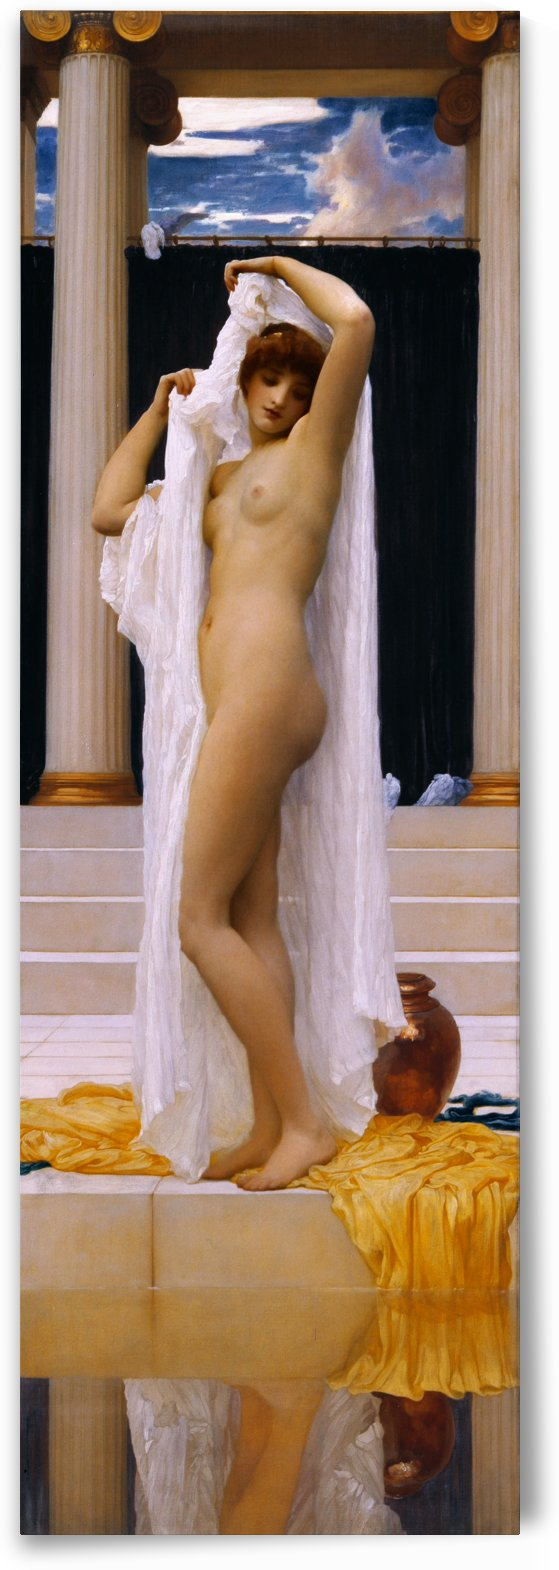 The Bath of Psyche by Frederic Leighton by xzendor7